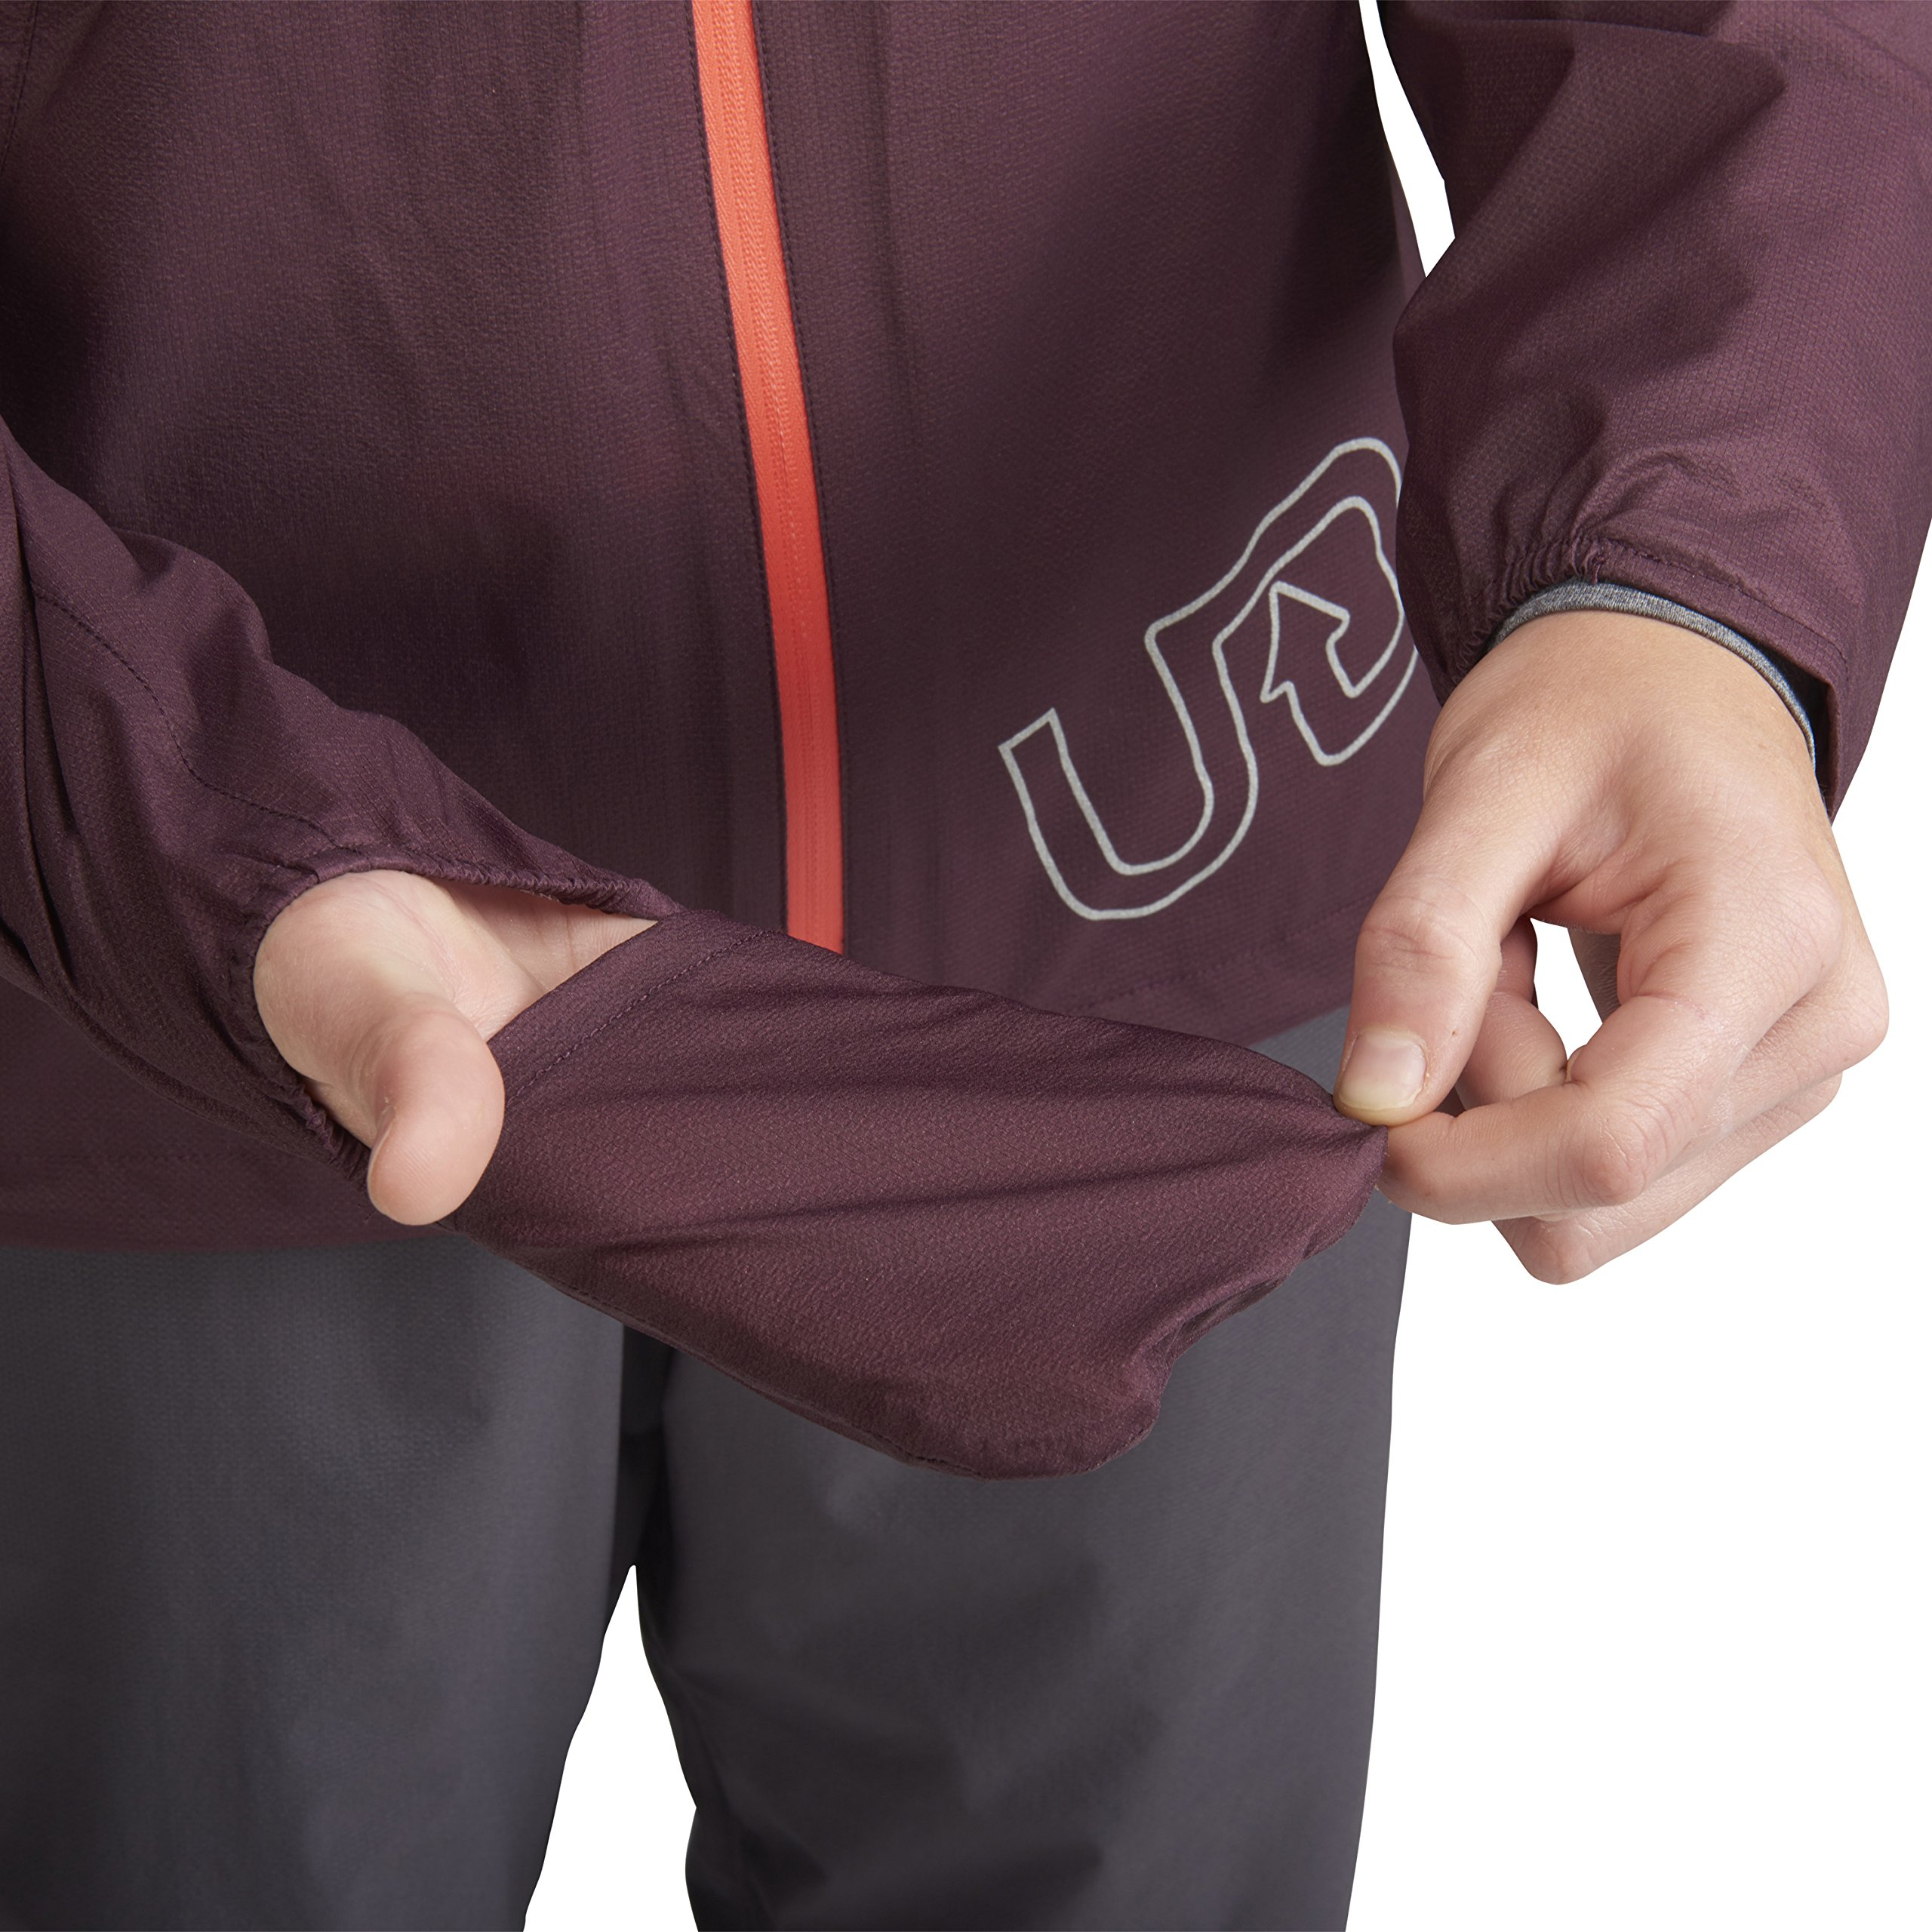 Ultimate Direction Women's Ultra Jacket V2, Fig, Small by Ultimate Direction (Image #3)